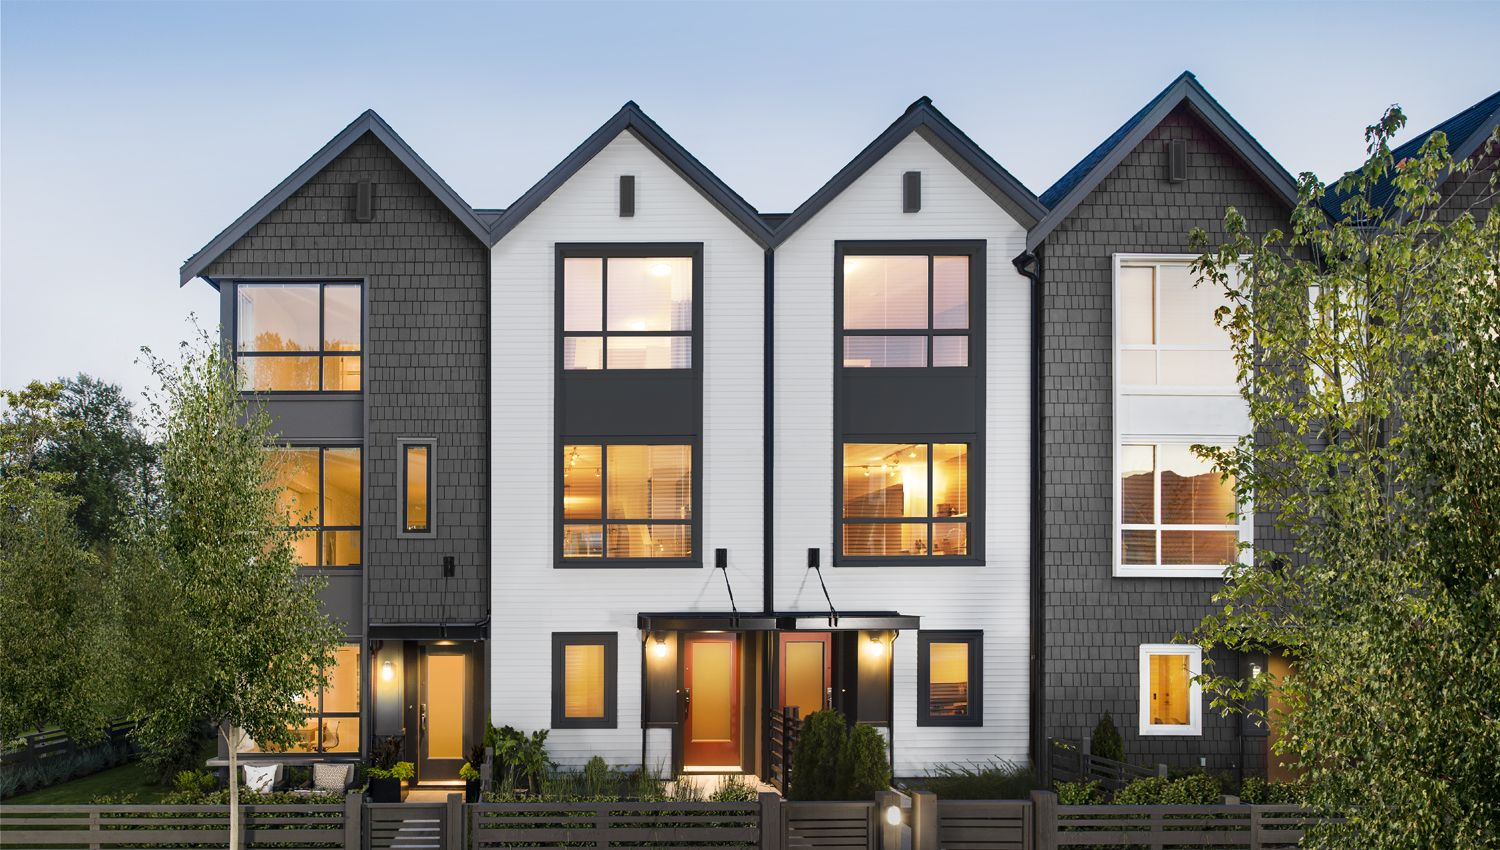 Clayton exterior saltbox architecture pitched gable for Modern townhouse exterior